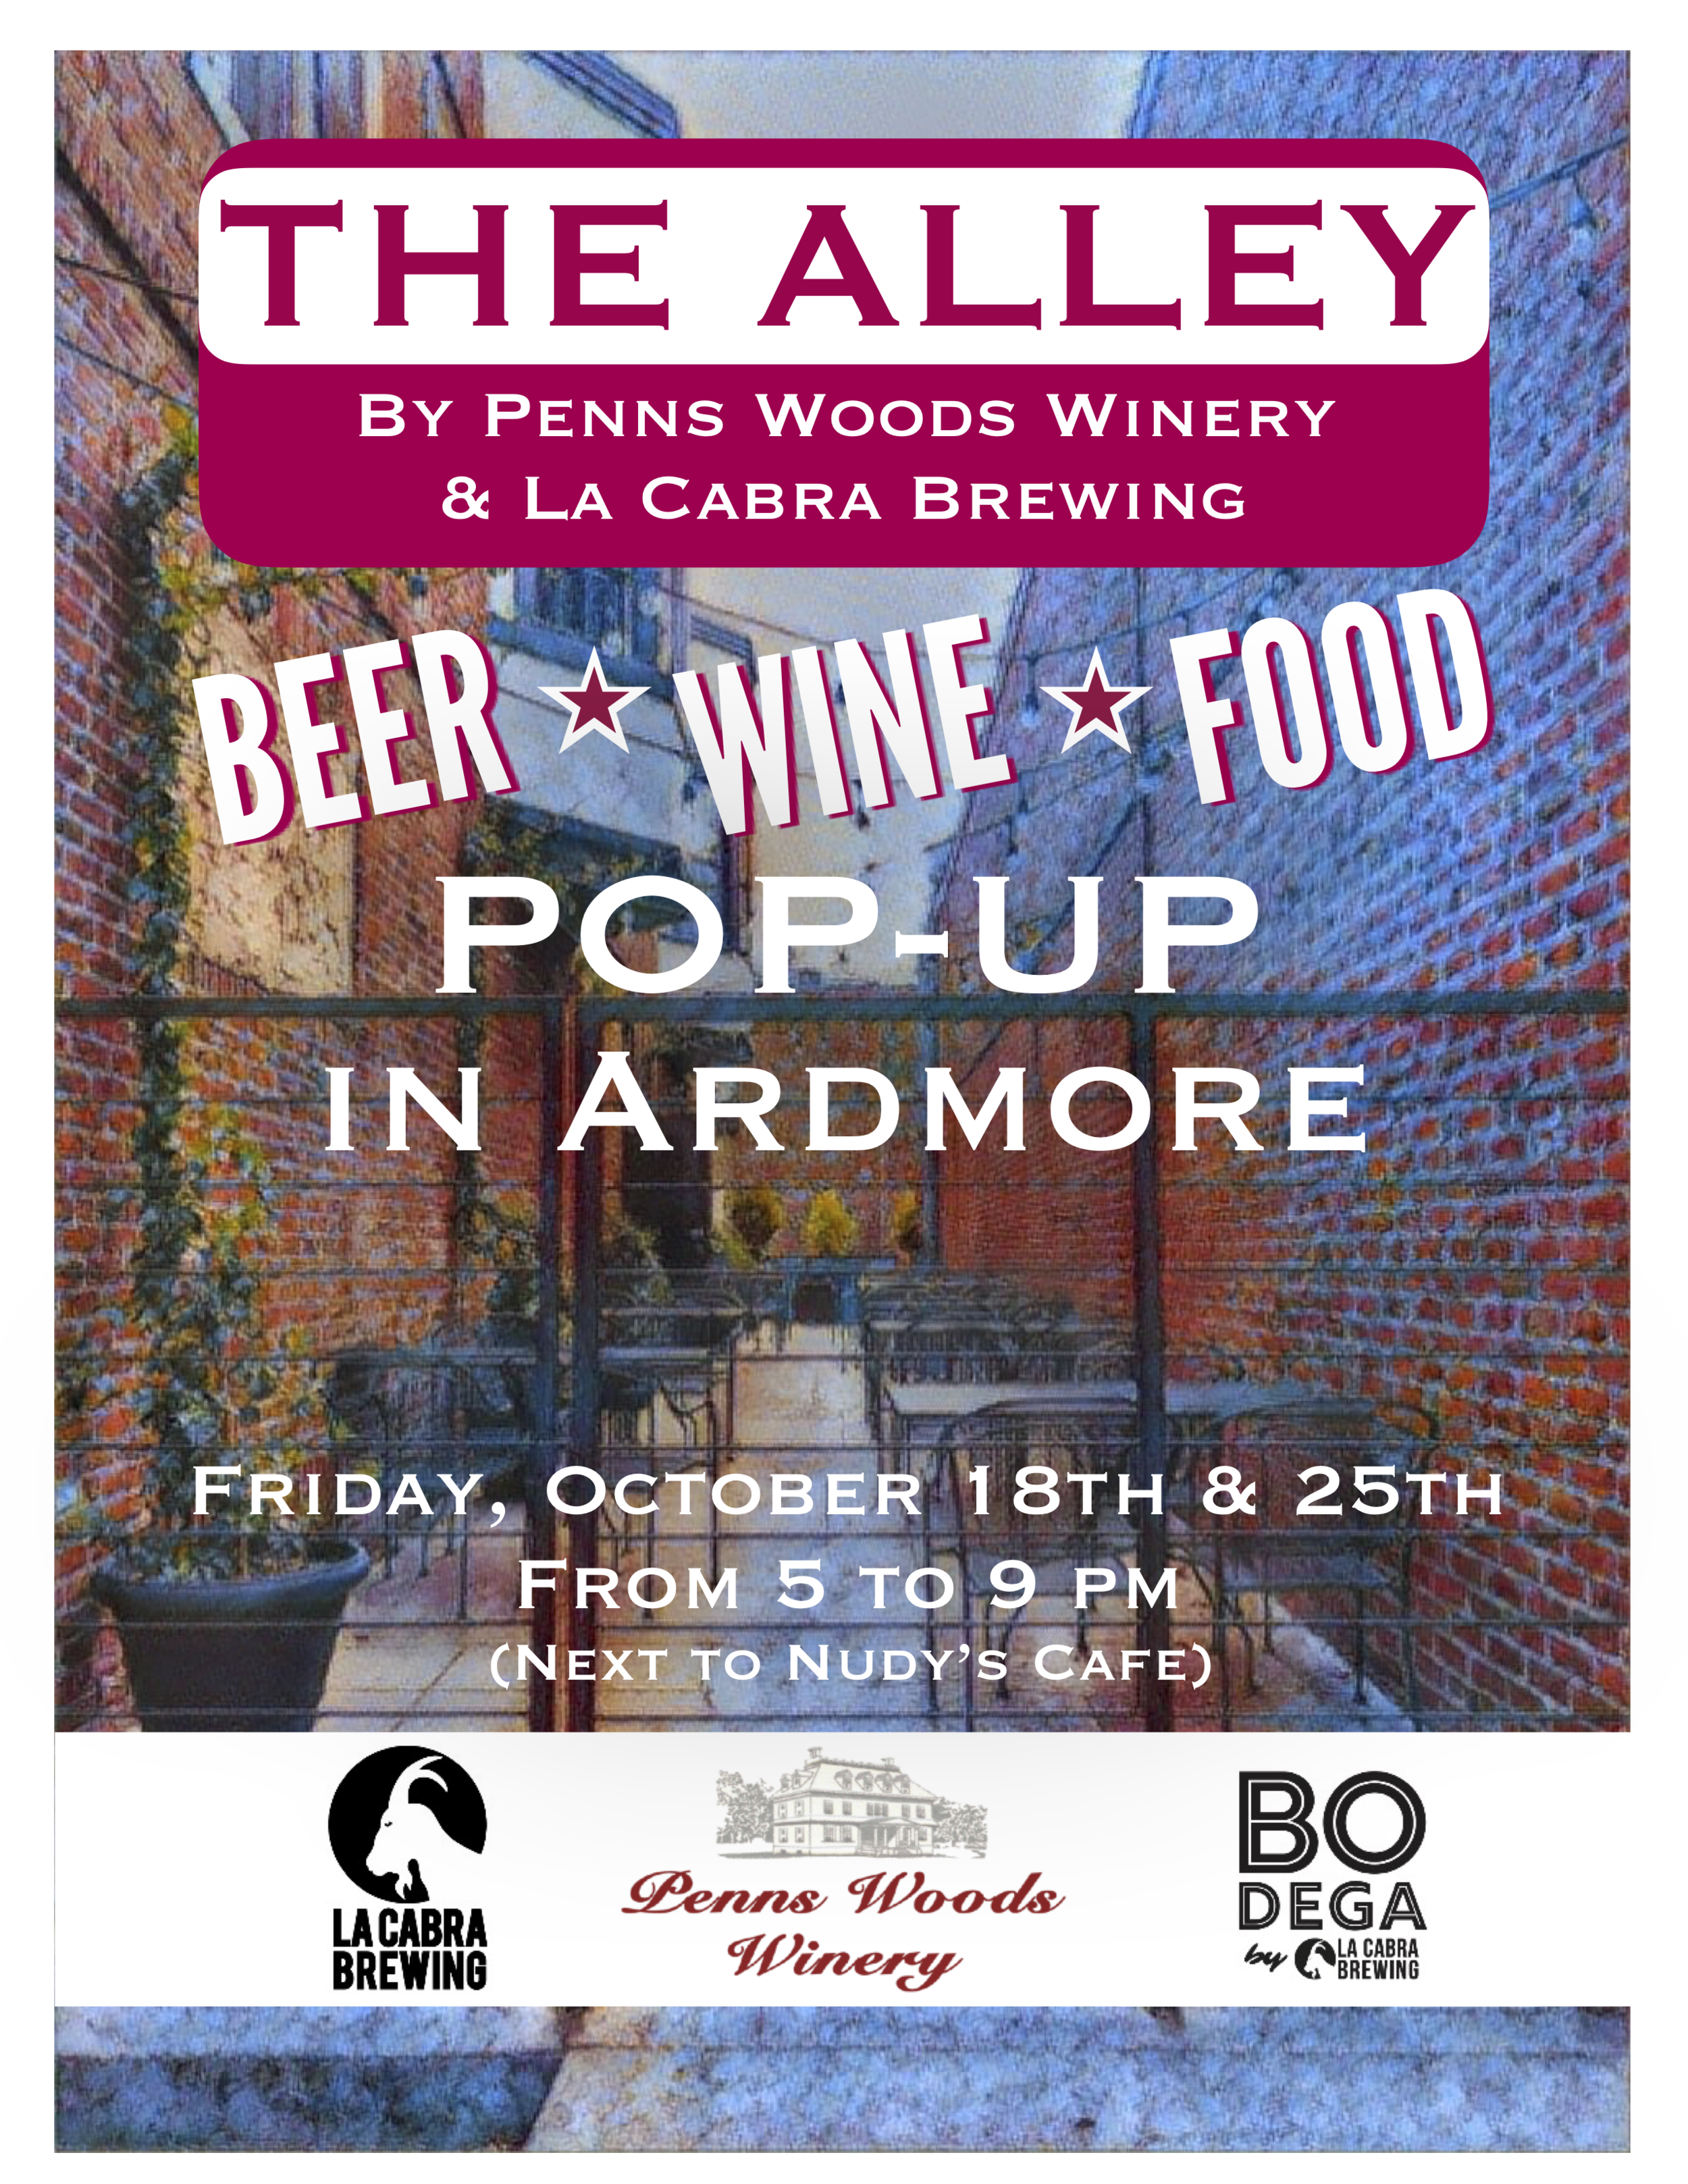 The Alley _ La Cabra Brewing Penns Woods Winery Bodega by La Cabra